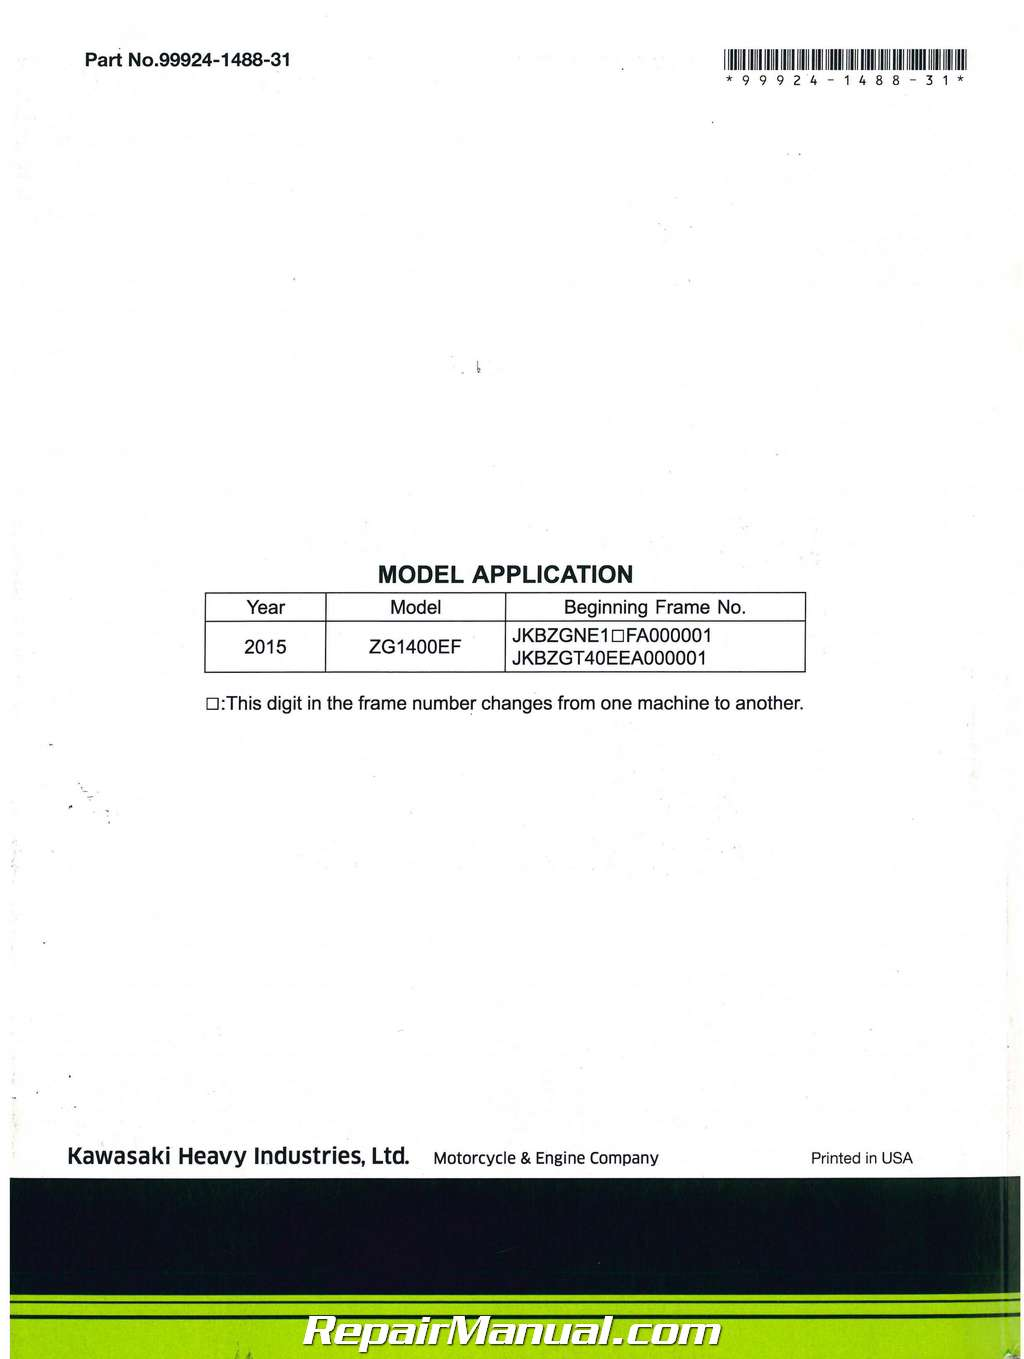 Kawasaki Concours Zg1000 Service Manual Wiring Diagram New Used Motorcycles For Sale In Kijiji